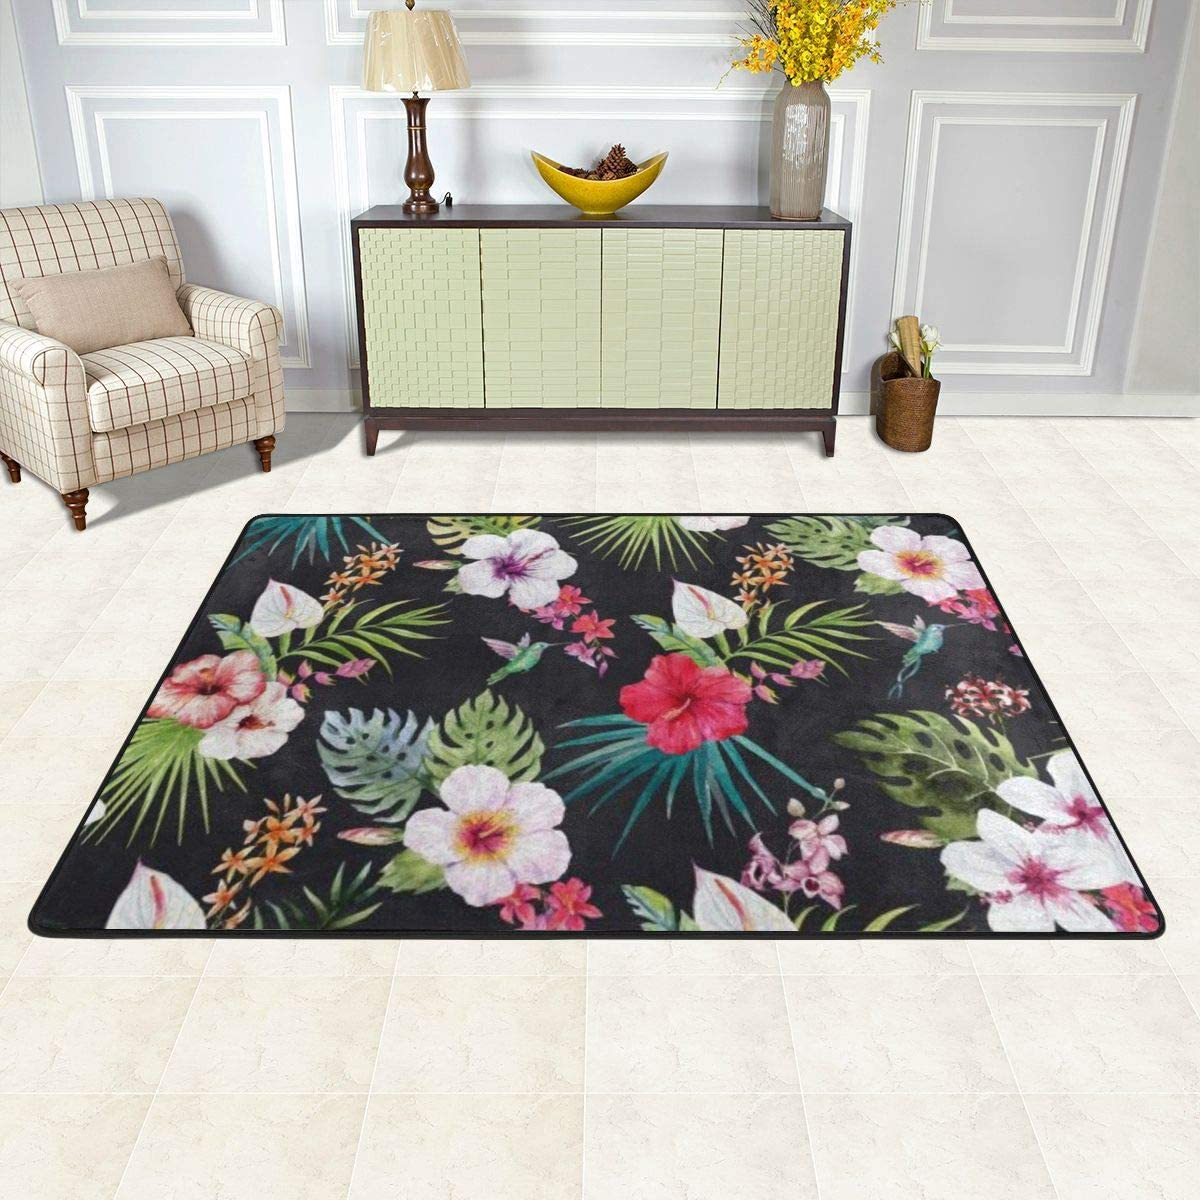 Luxury Carpet 別倉庫からの配送 for Floor Indoor and Black Floral Decoration 特価キャンペーン Pink